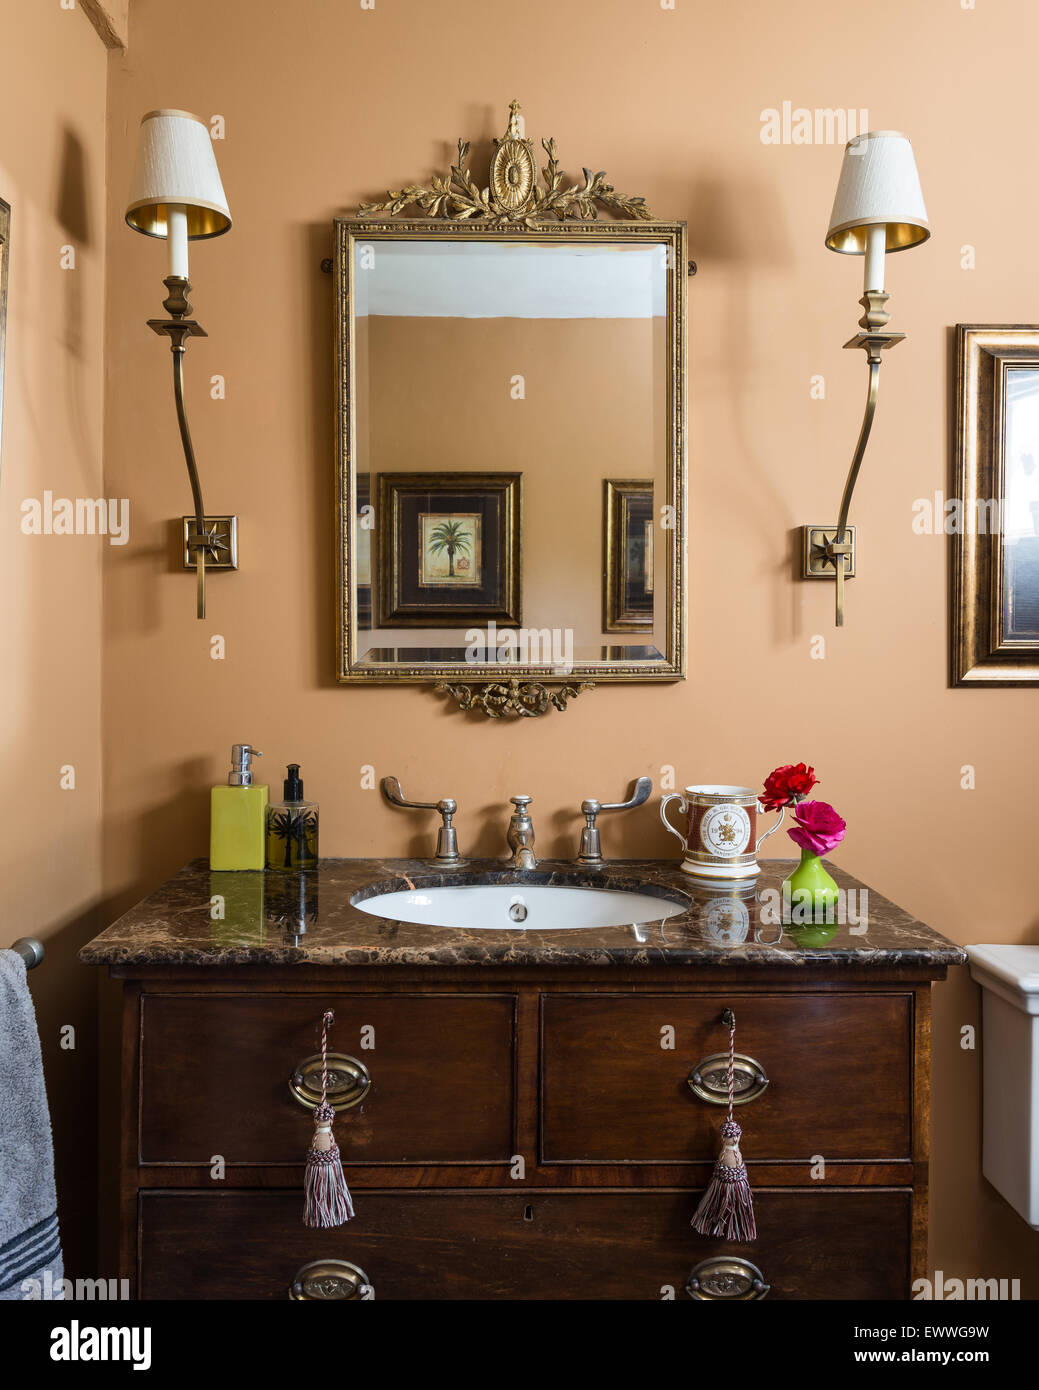 Marble topped antique vanity unit in cloakroom with walls painted in Indian  Summer by Flamant Paris. - Marble Topped Antique Vanity Unit In Cloakroom With Walls Painted In